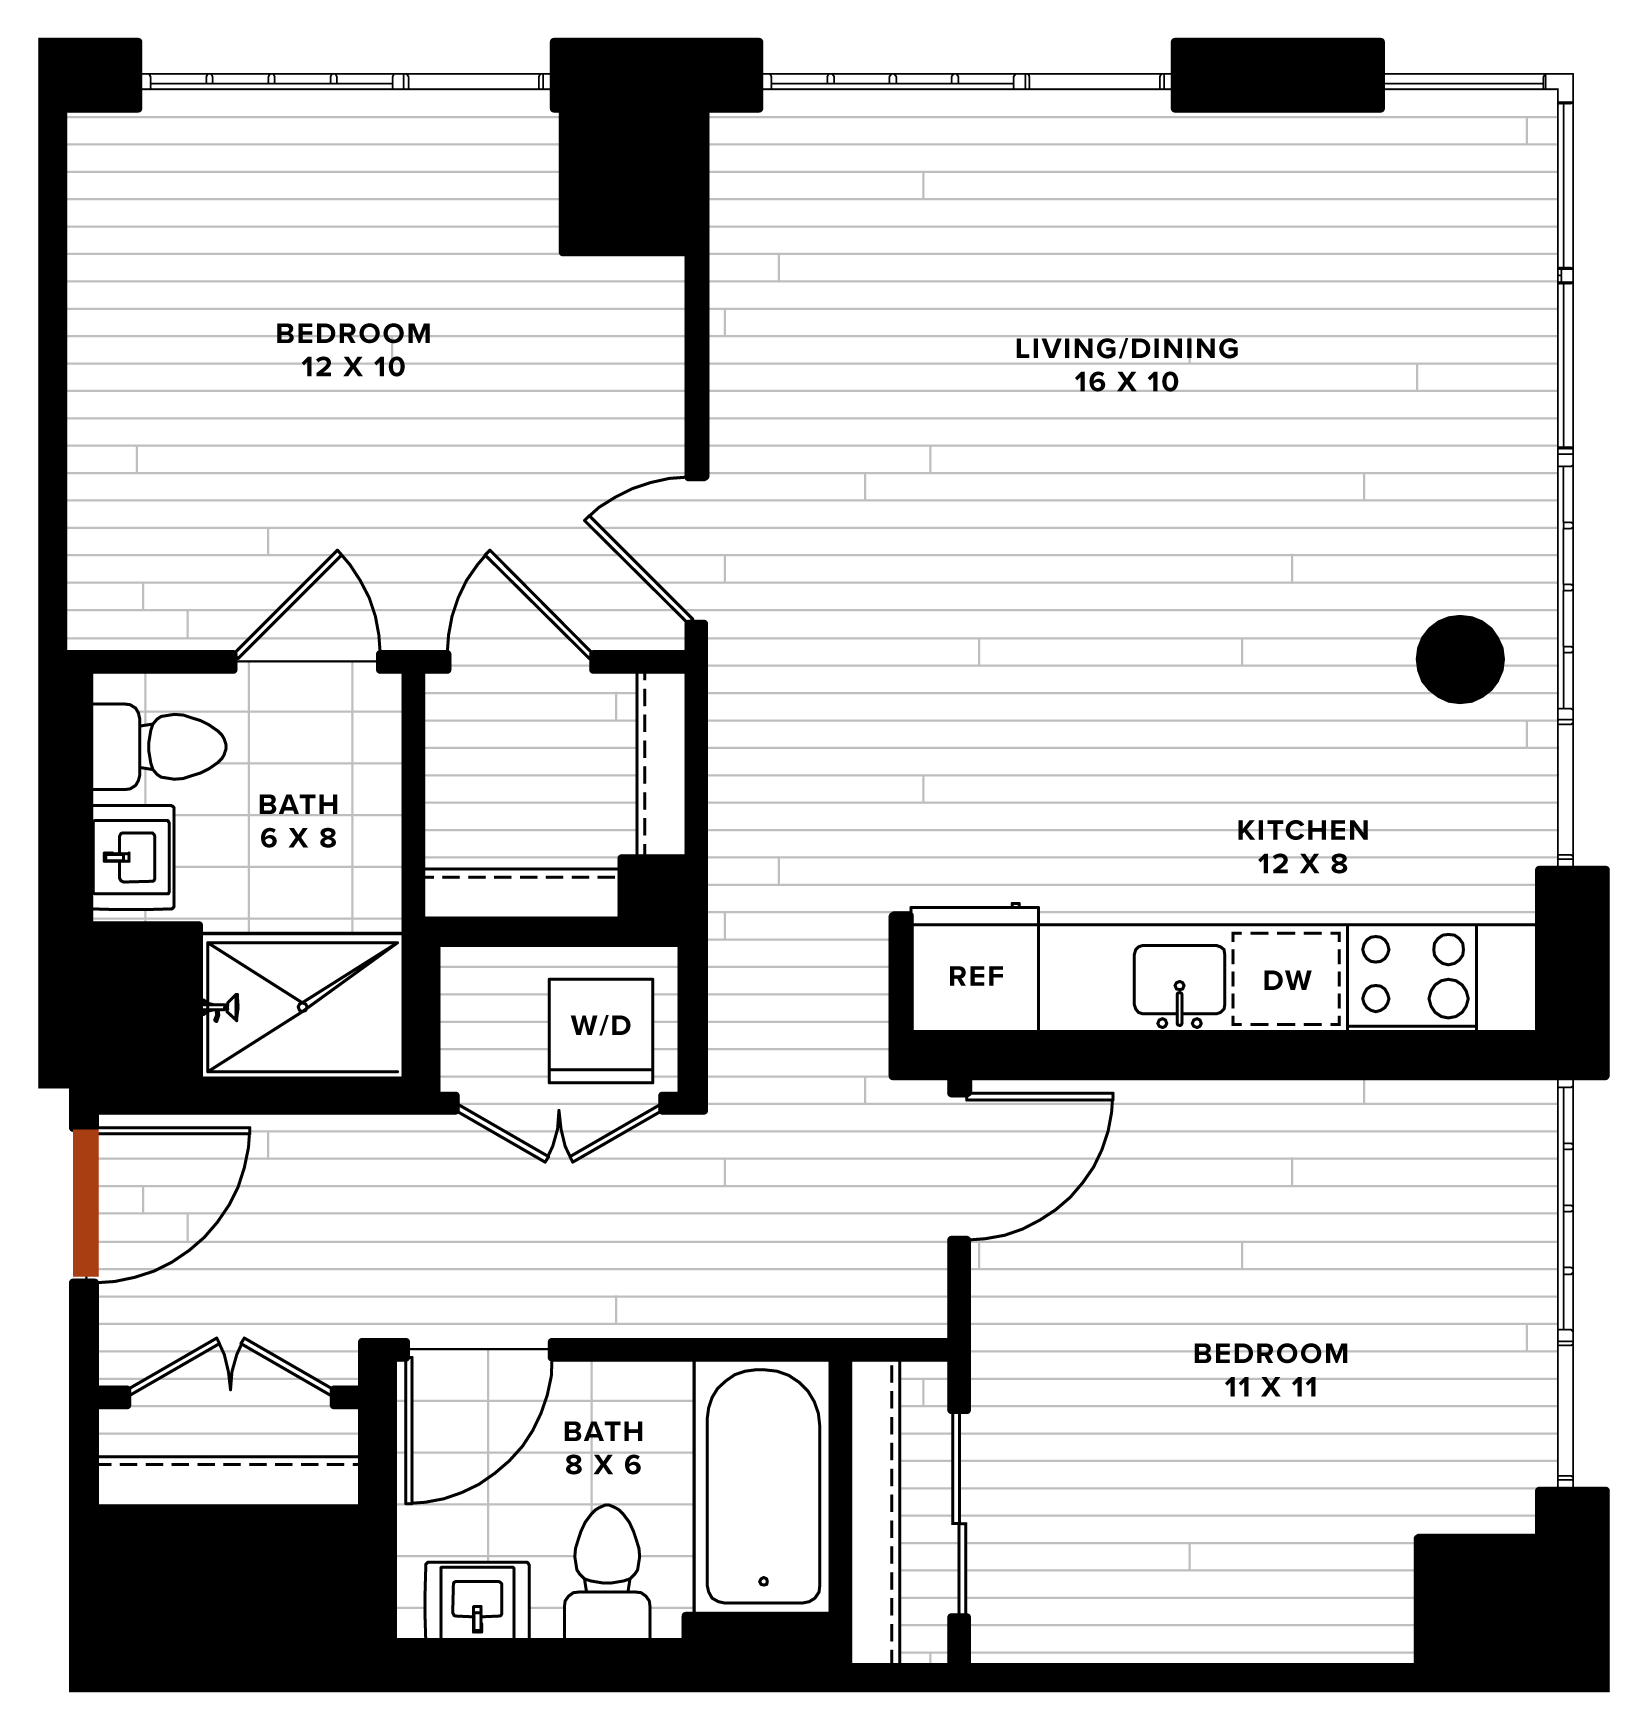 floorplan image of unit 0718